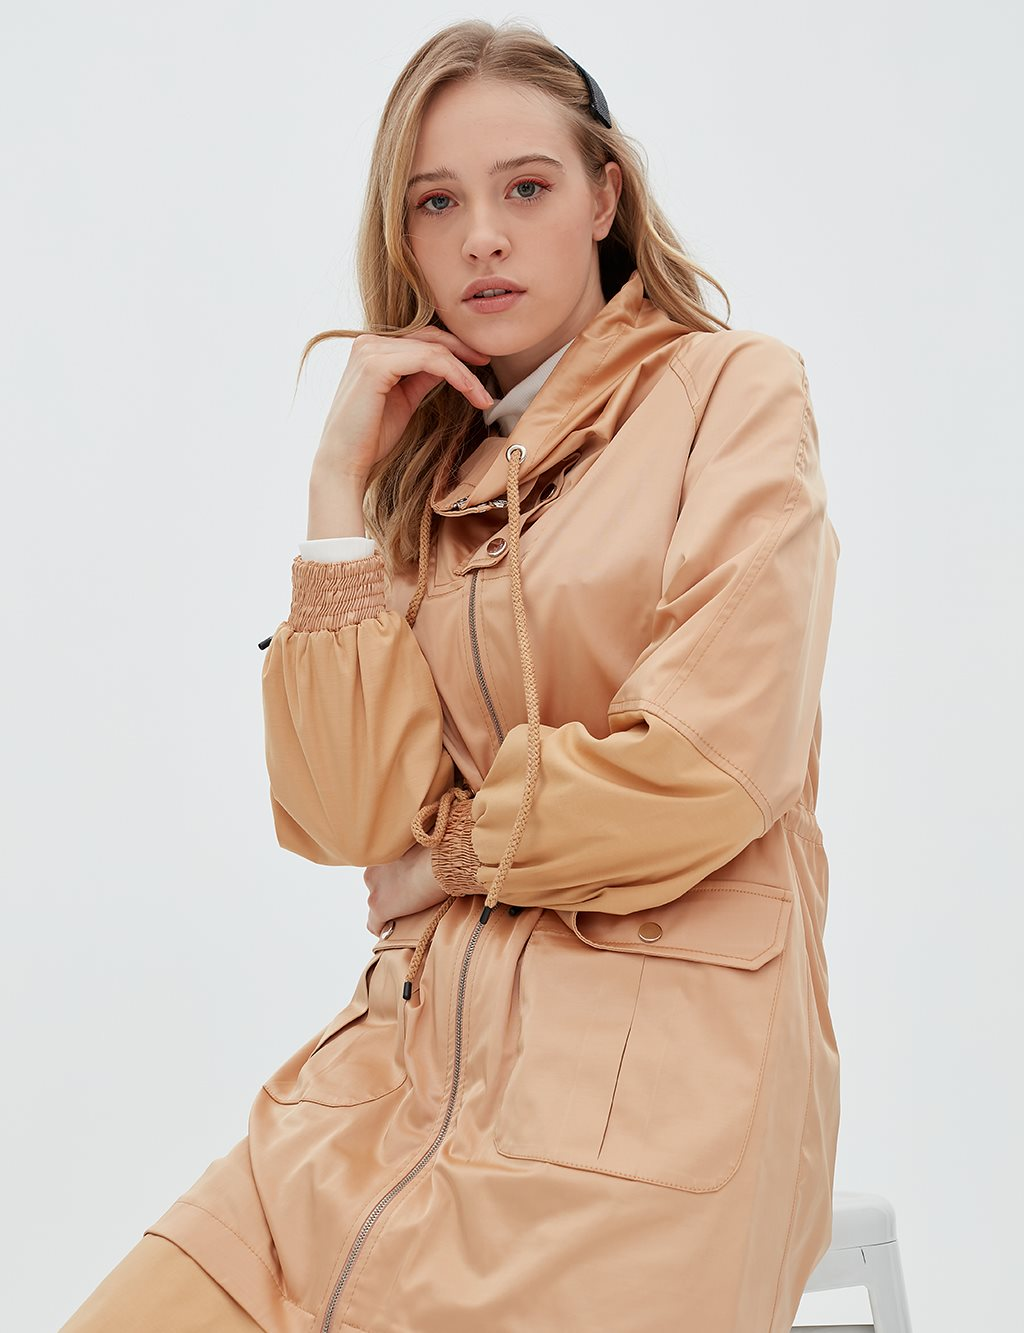 Ruched Coat With Zipper B20 24005 Beige